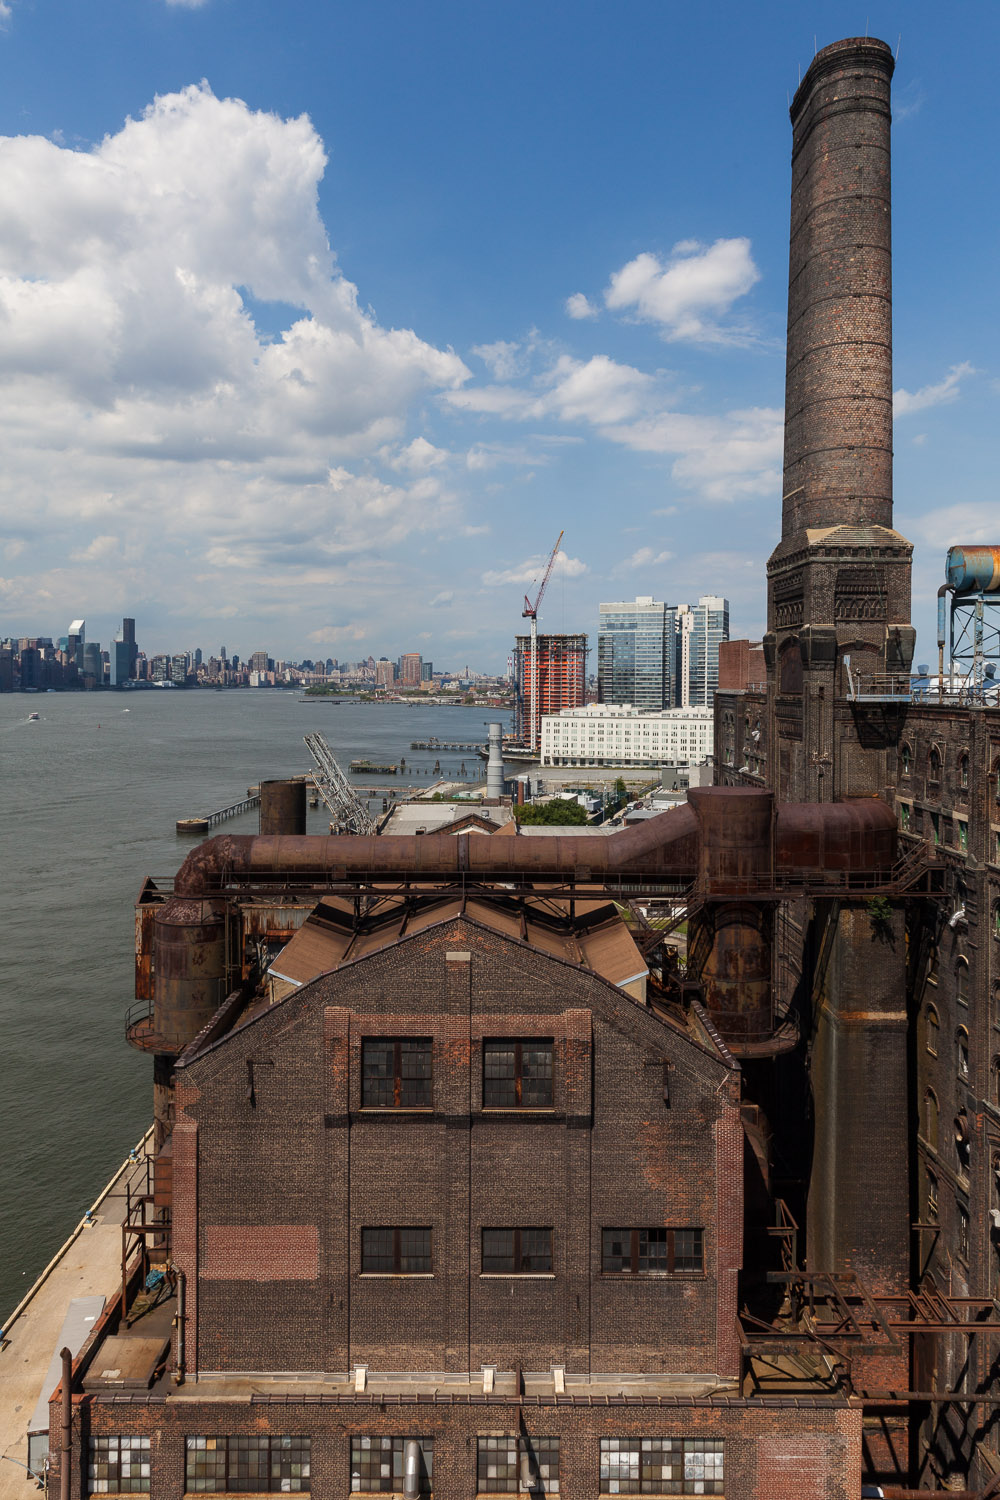 Boiler House, View from the Bin Structure Looking North, Domino Sugar Factory